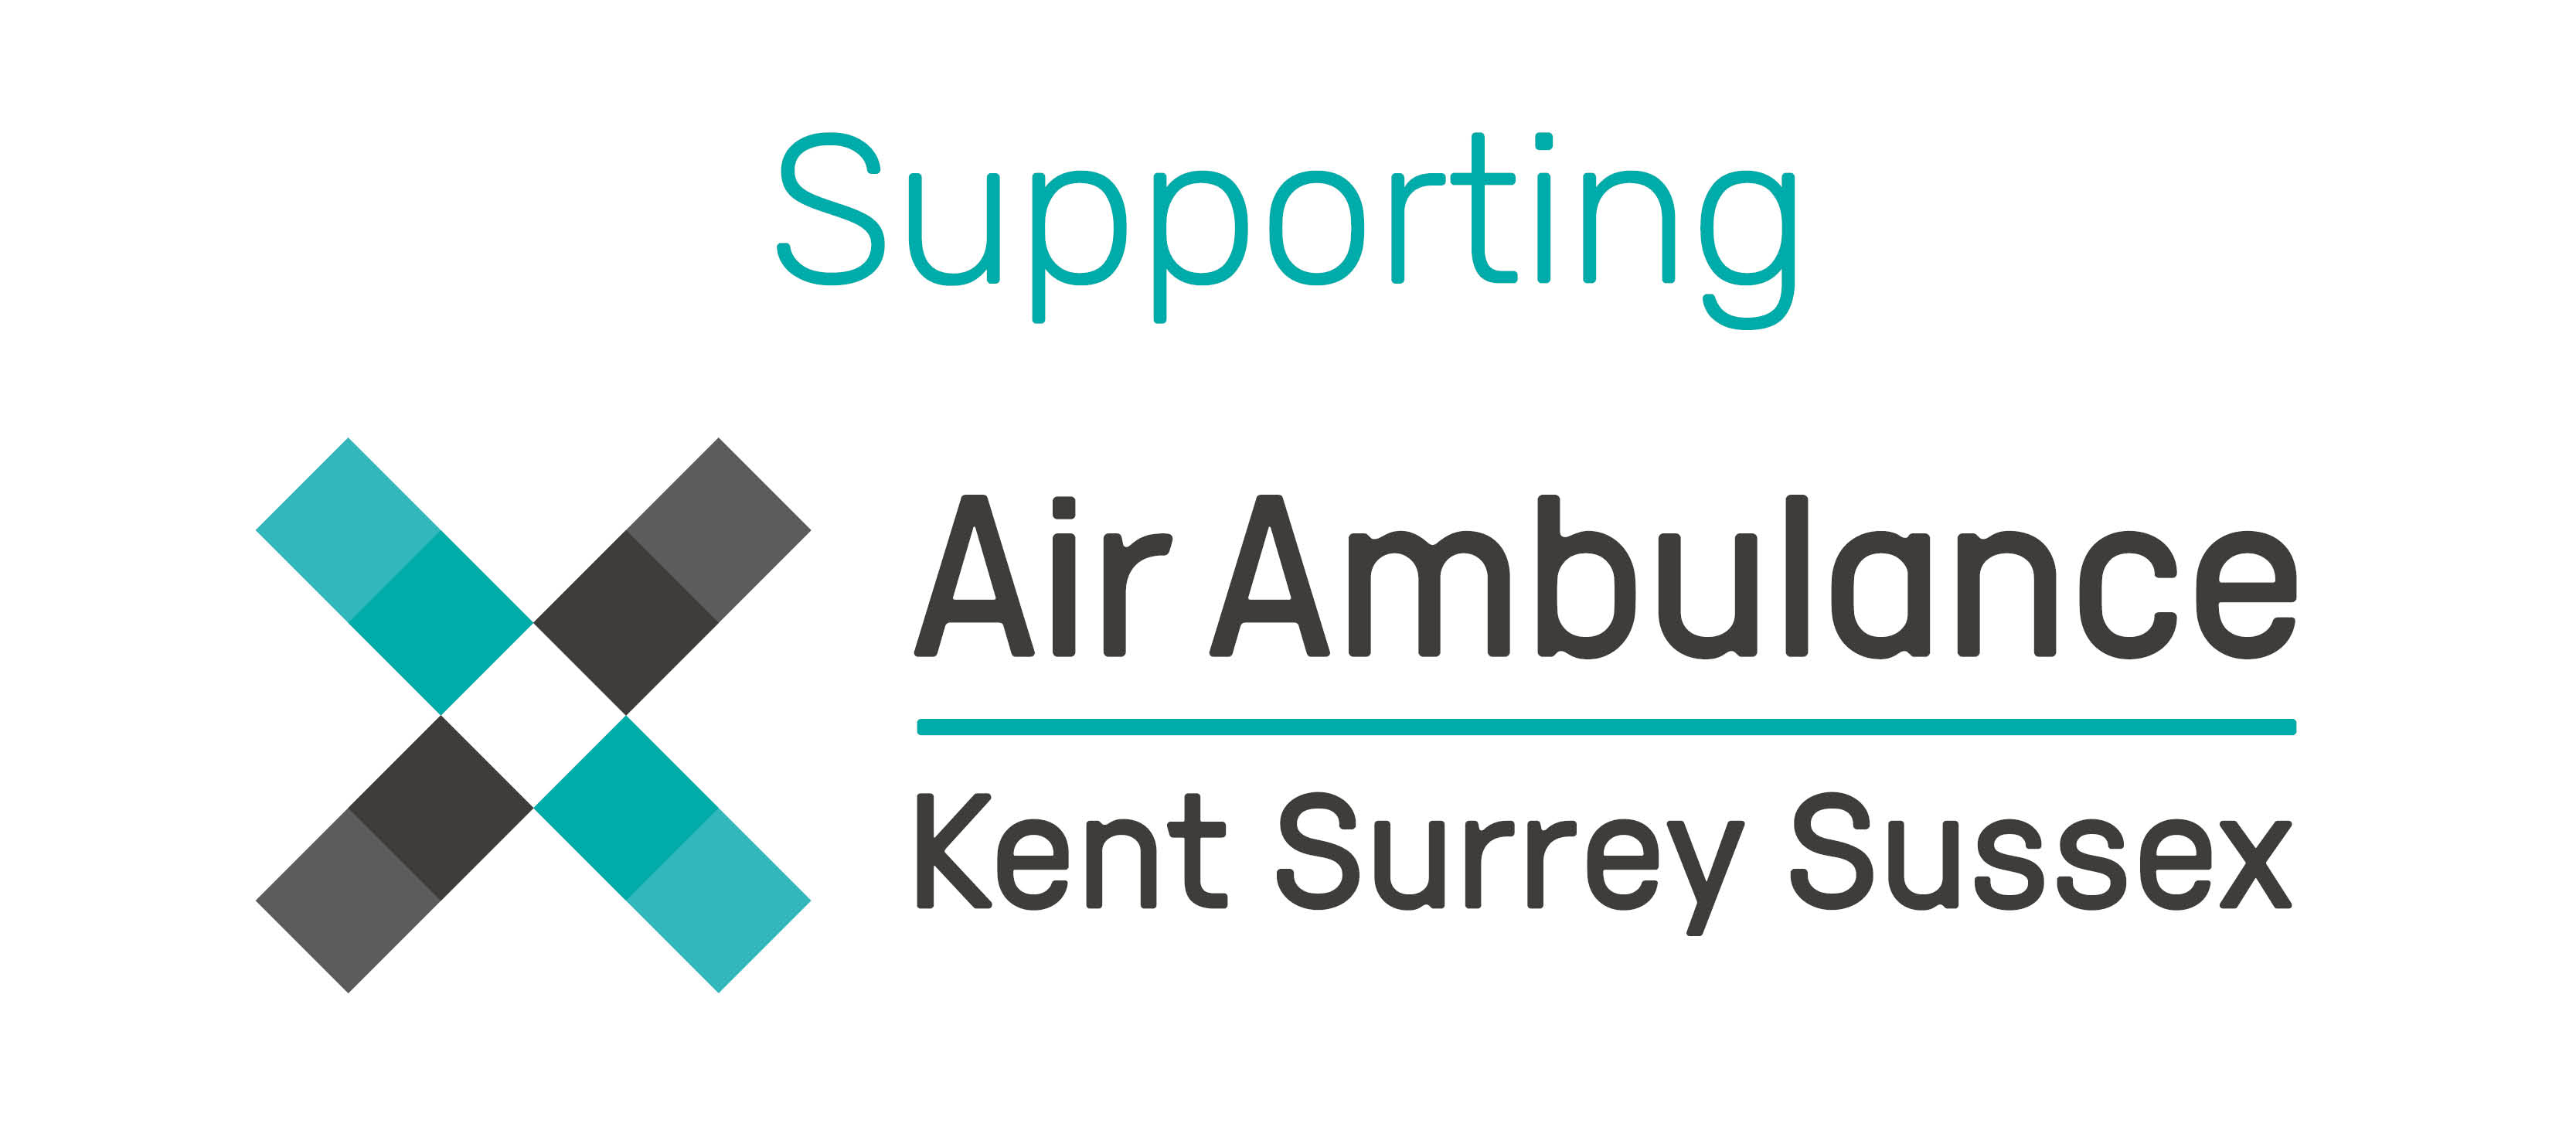 Proud to support the Kent Air Ambulance